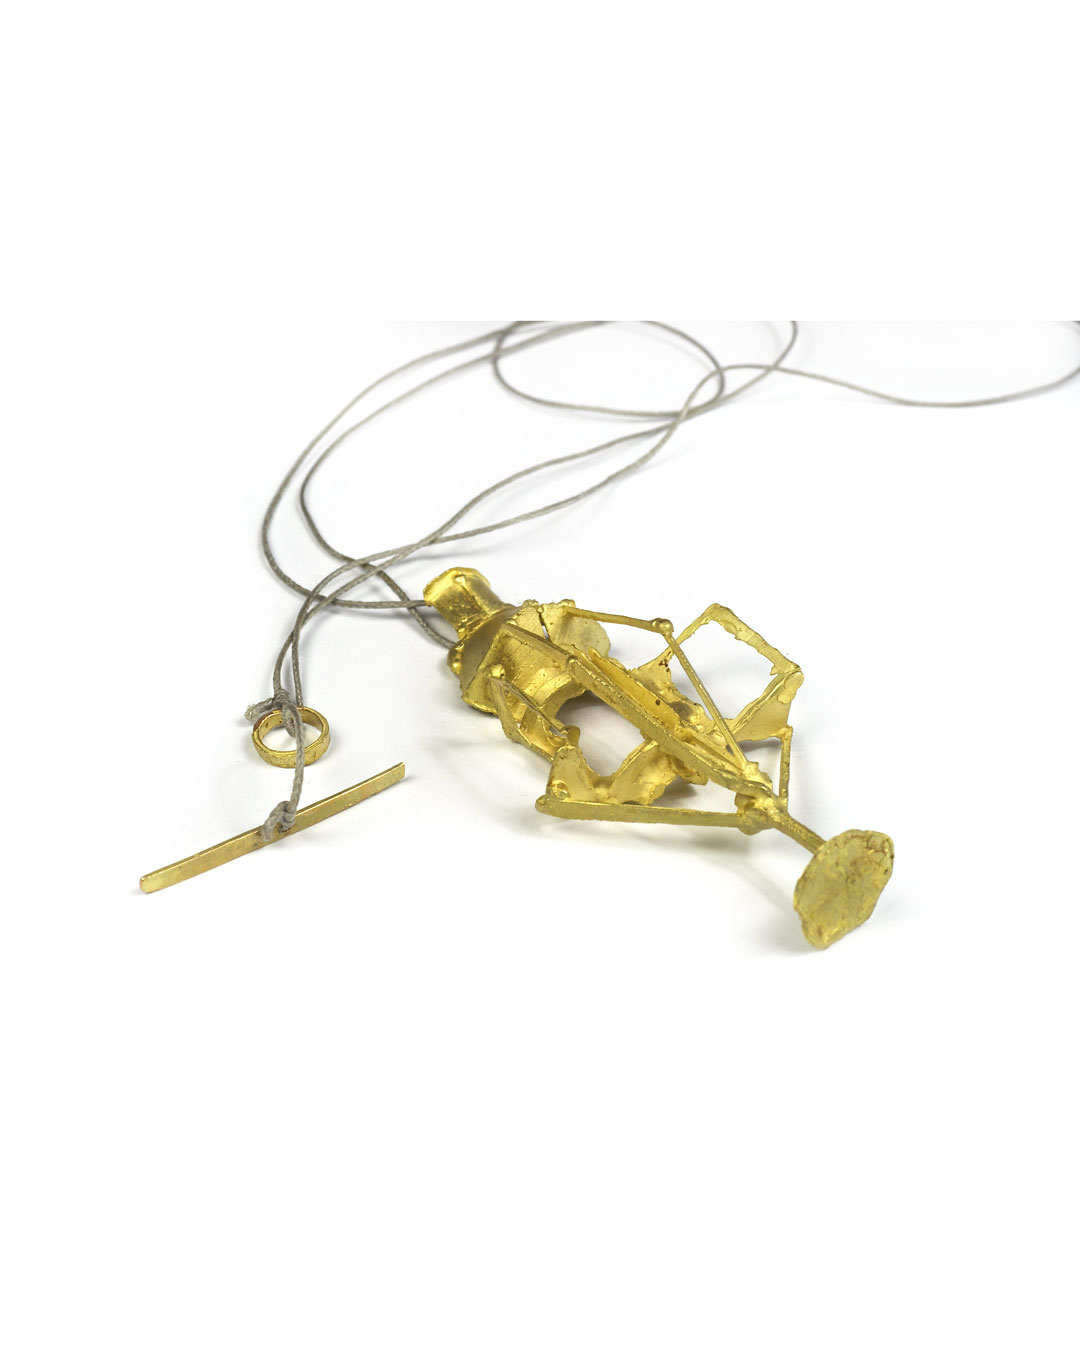 Andrea Wippermann, untitled, 1999, pendant; 14ct gold, nylon, 75 x 35 x 15 mm, €2900